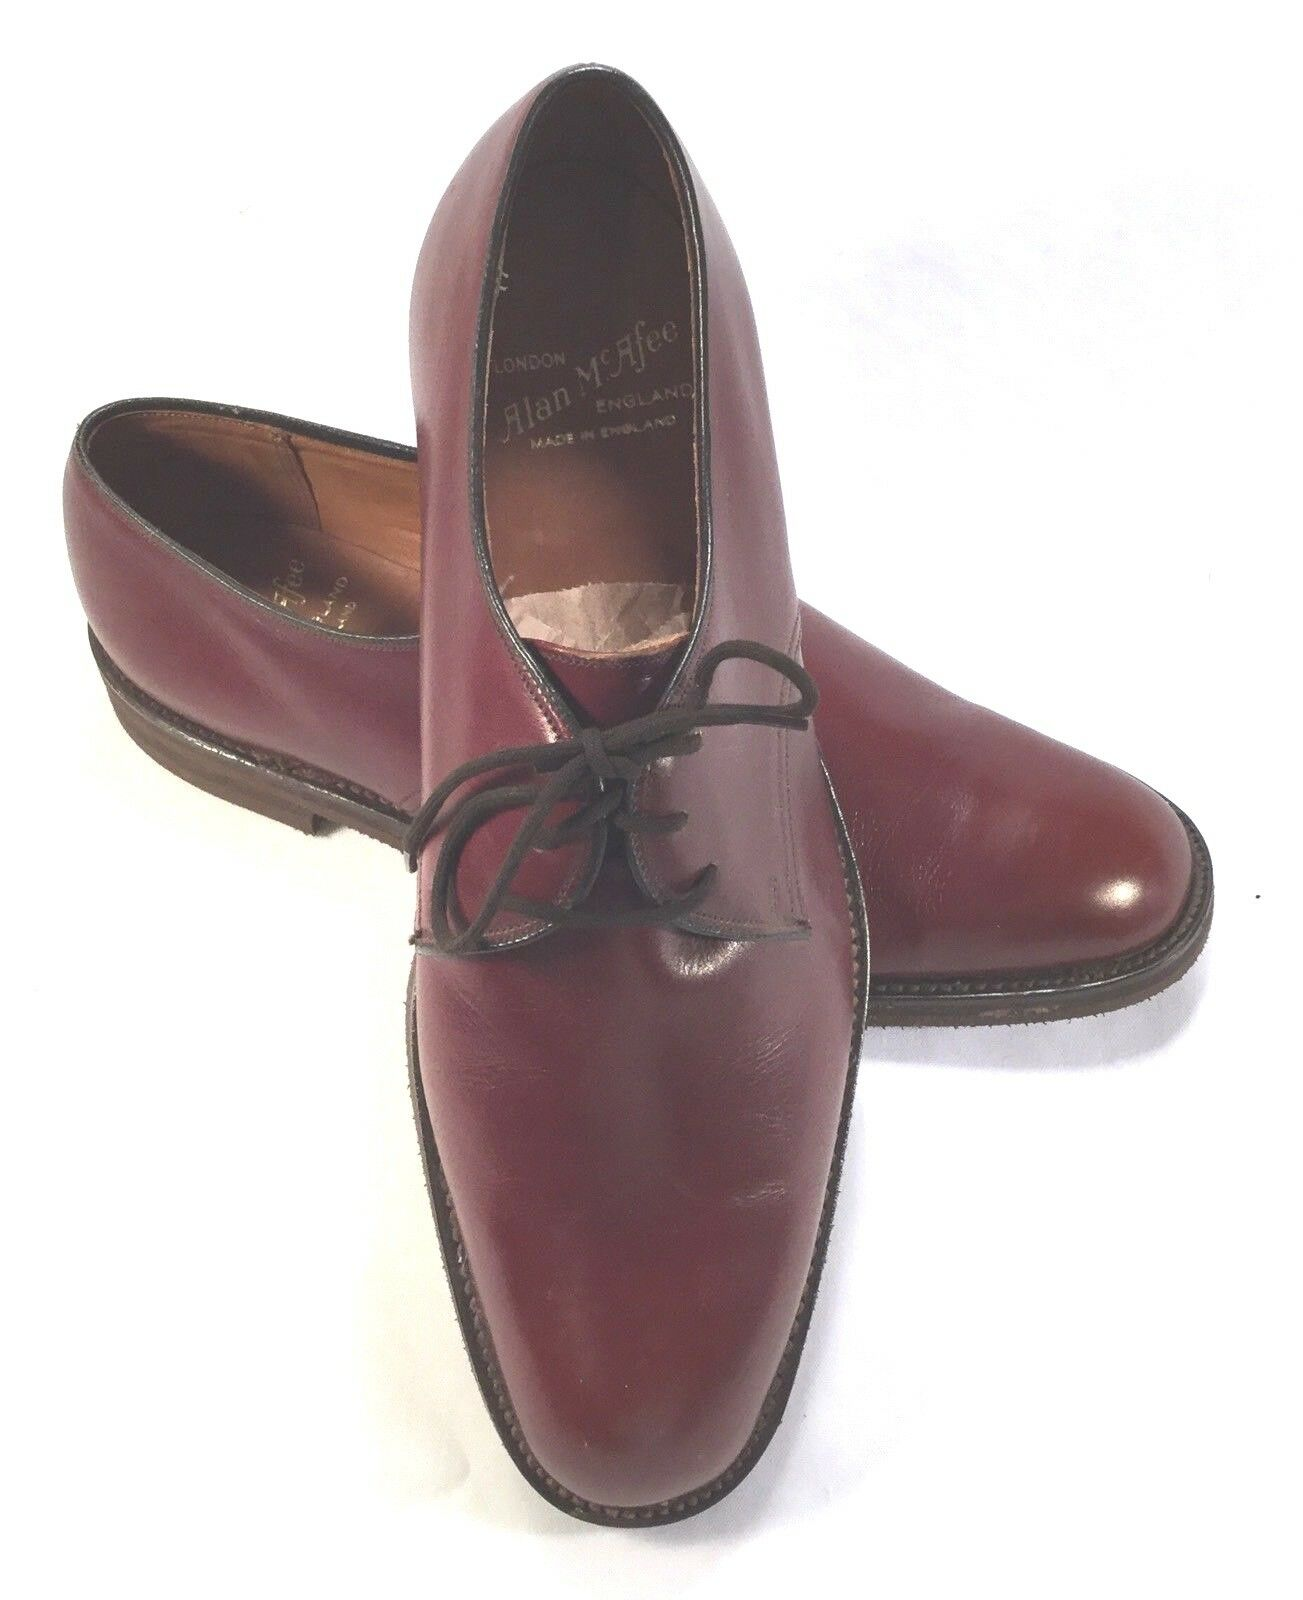 Alan McAfee Homme Derbies marron made in England Lacets Cravate Taille 9 aucune usure